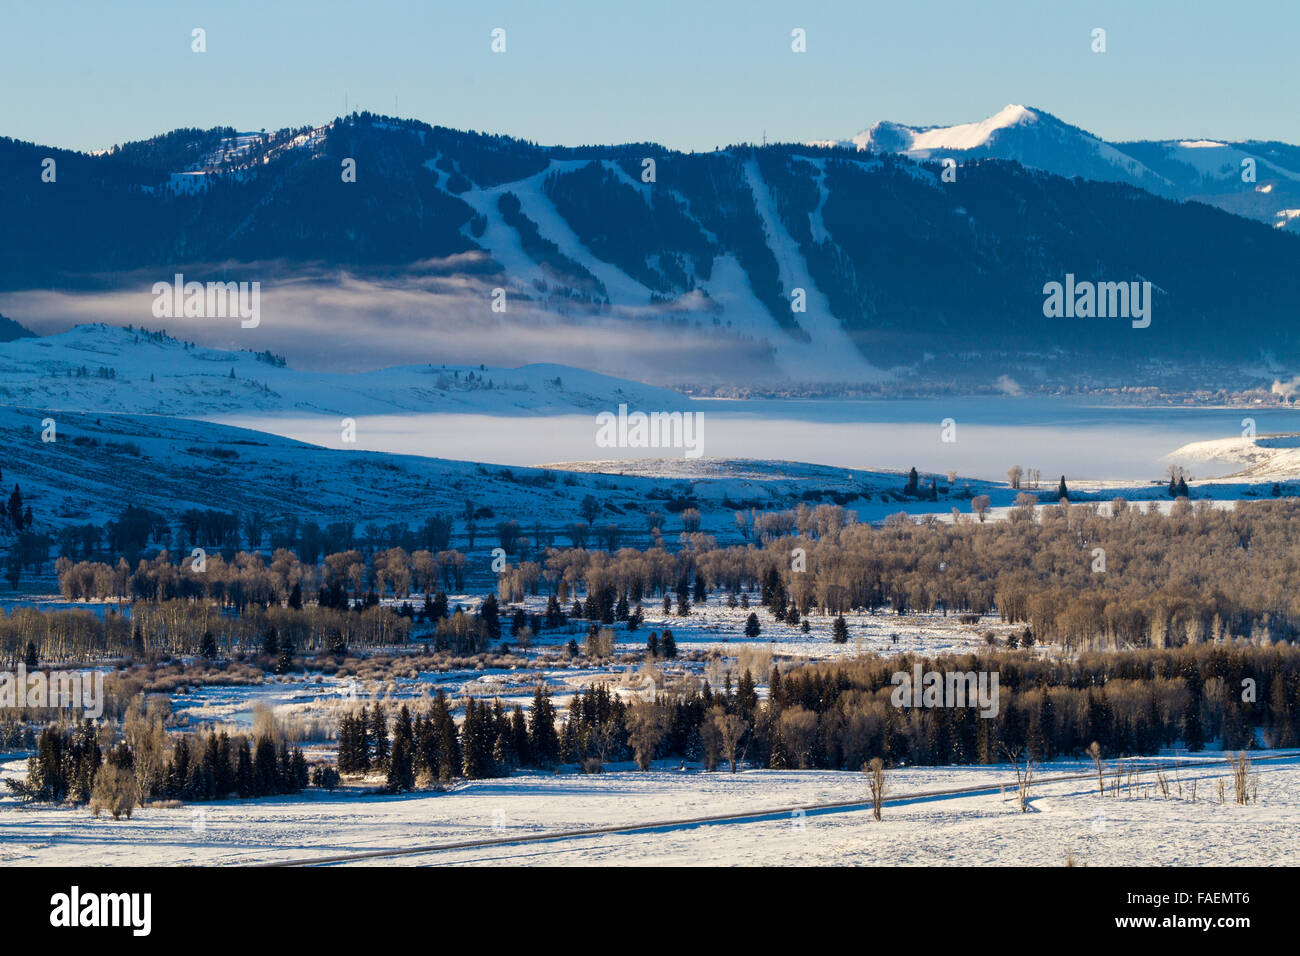 The Snow King Ski Resort towering above Jackson, Wyoming and the National Elk Refuge. - Stock Image